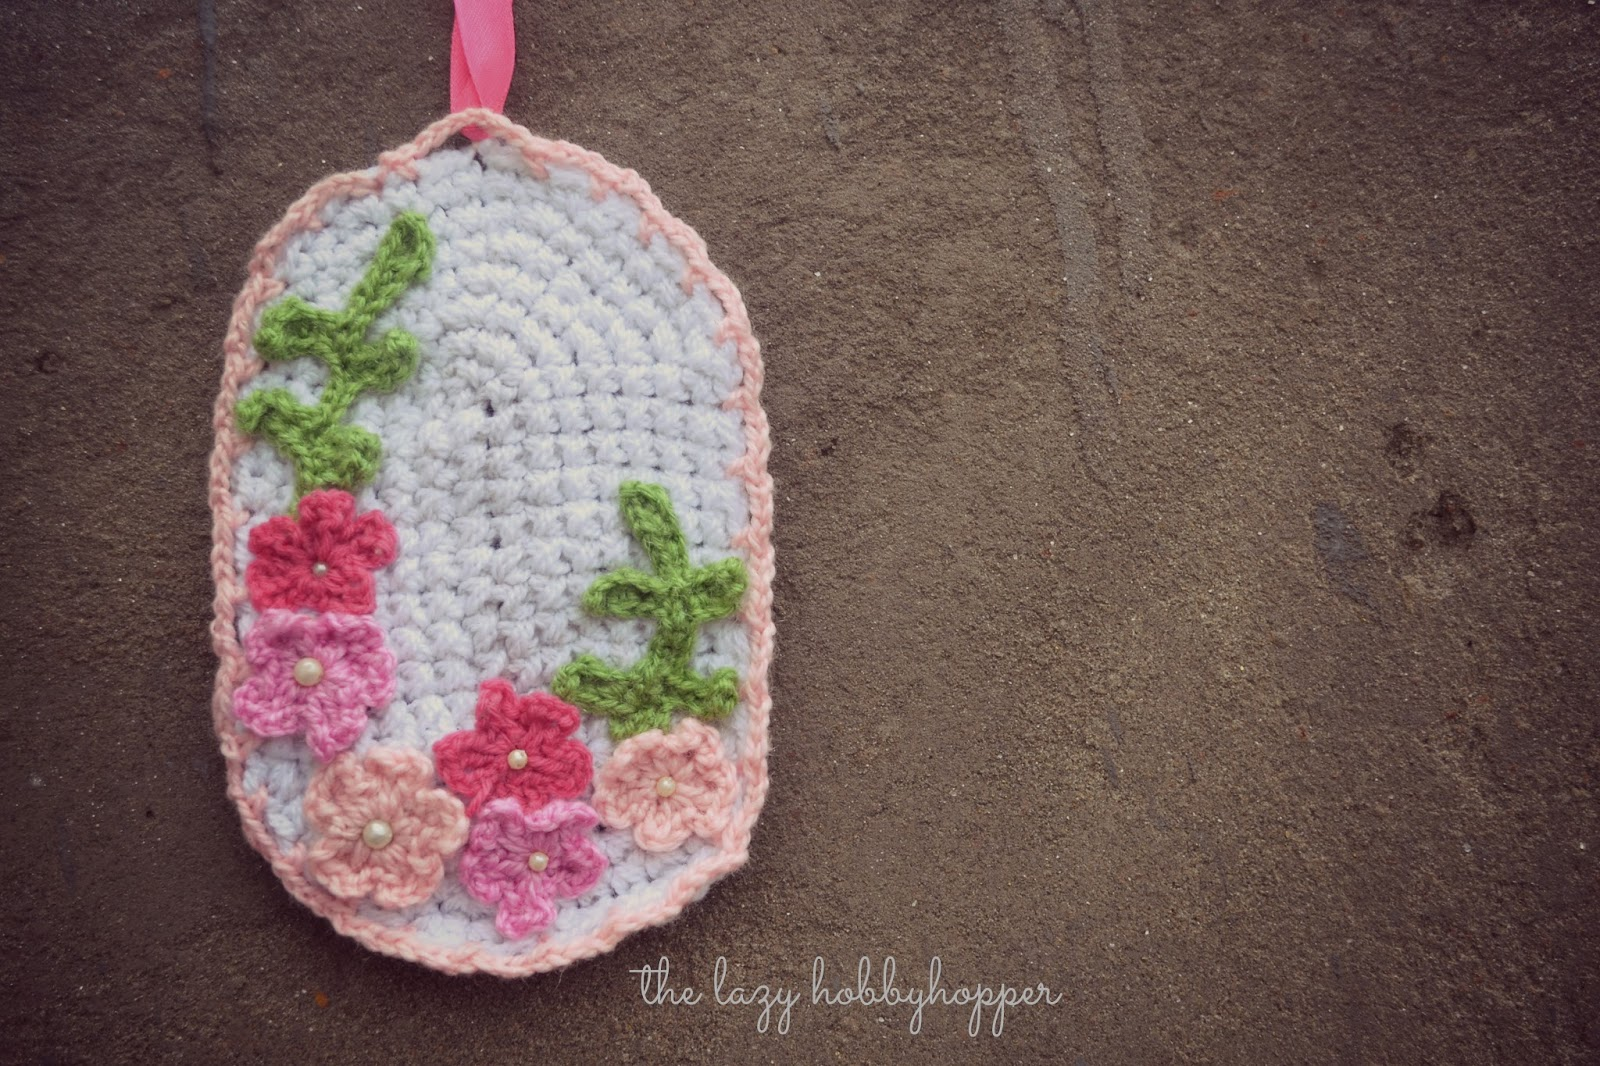 The Lazy Hobbyhopper: Crochet medallion with flowers